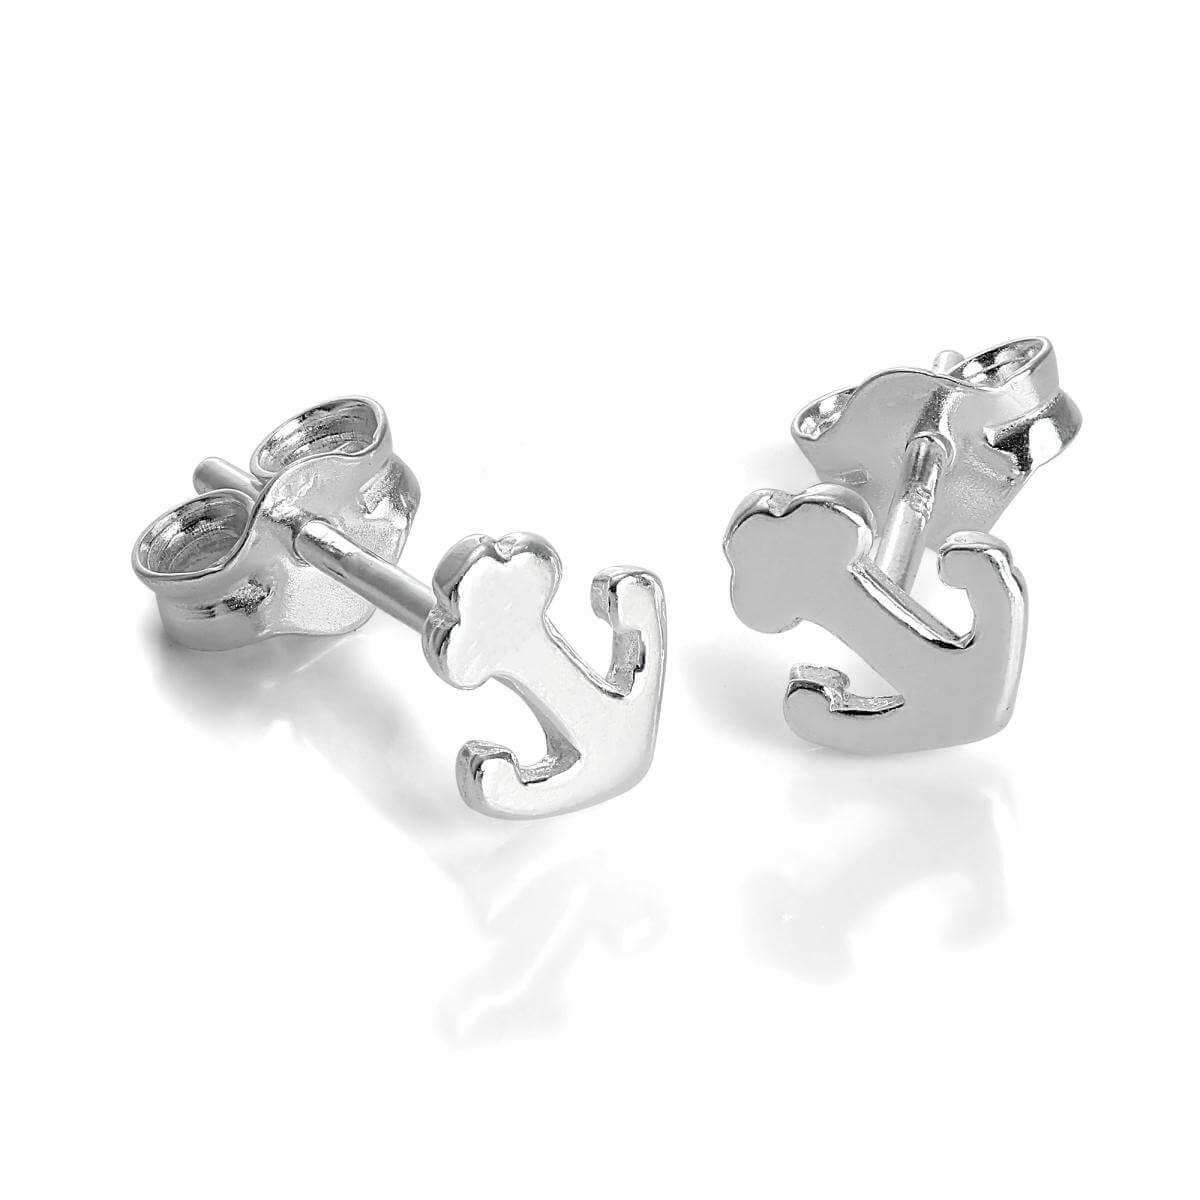 Small Sterling Silver Anchor Stud Earrings